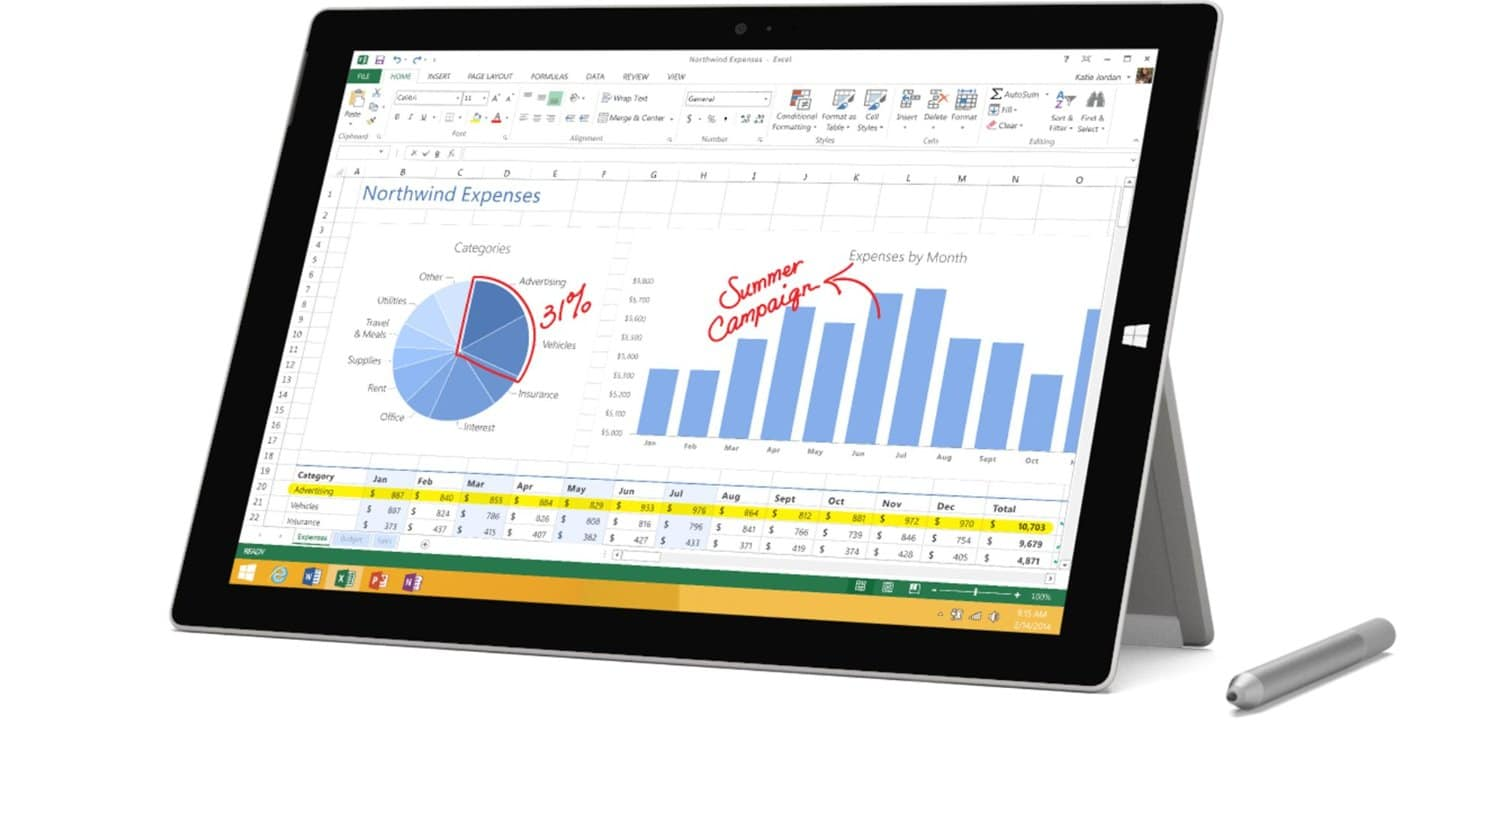 Microsoft Surface Pro 3 - Best Laptop for College Students 2015 with Microsoft Office